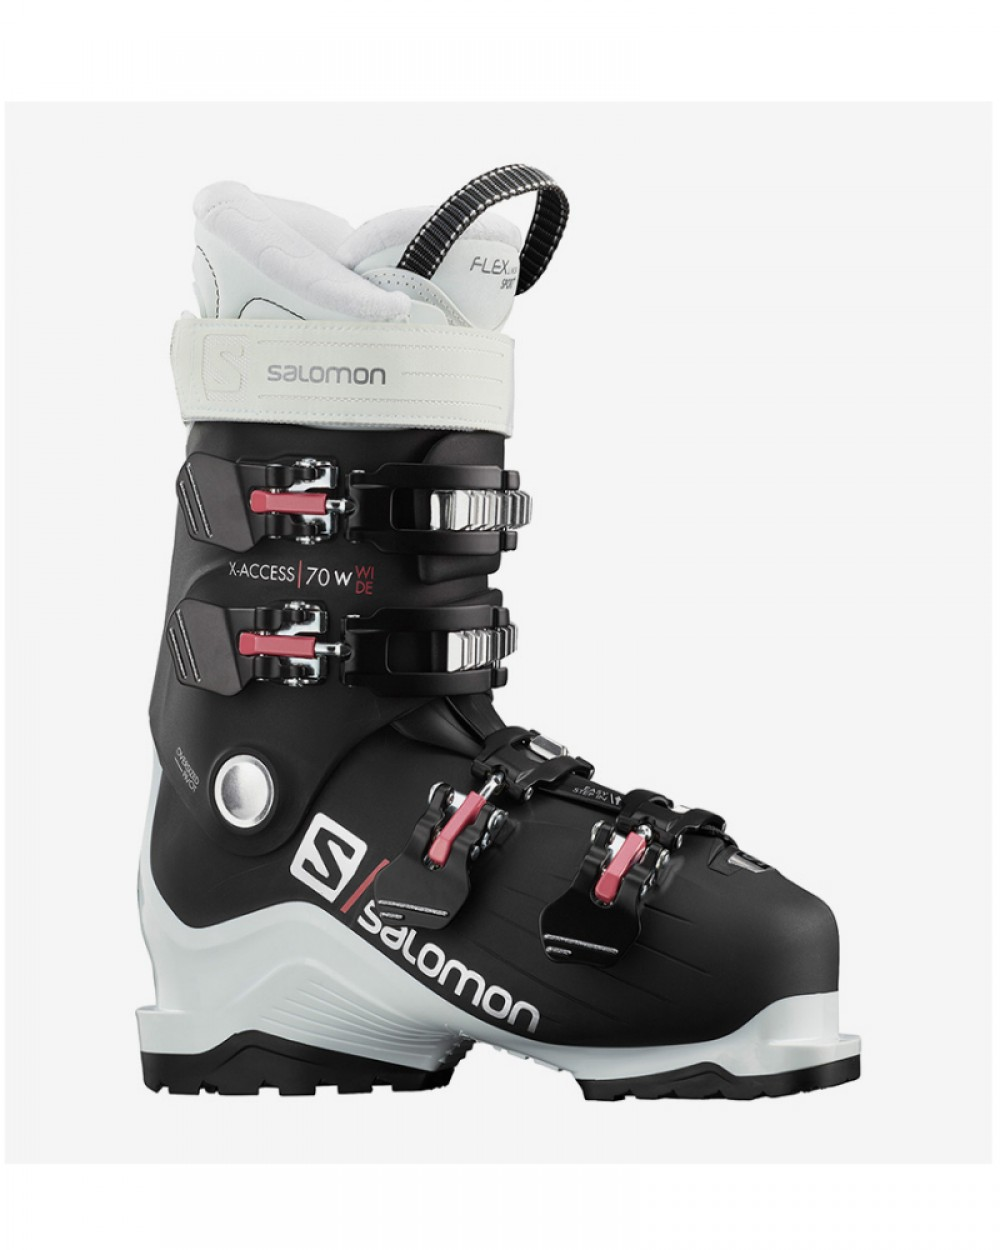 SALOMON X ACCESS 70W WIDE